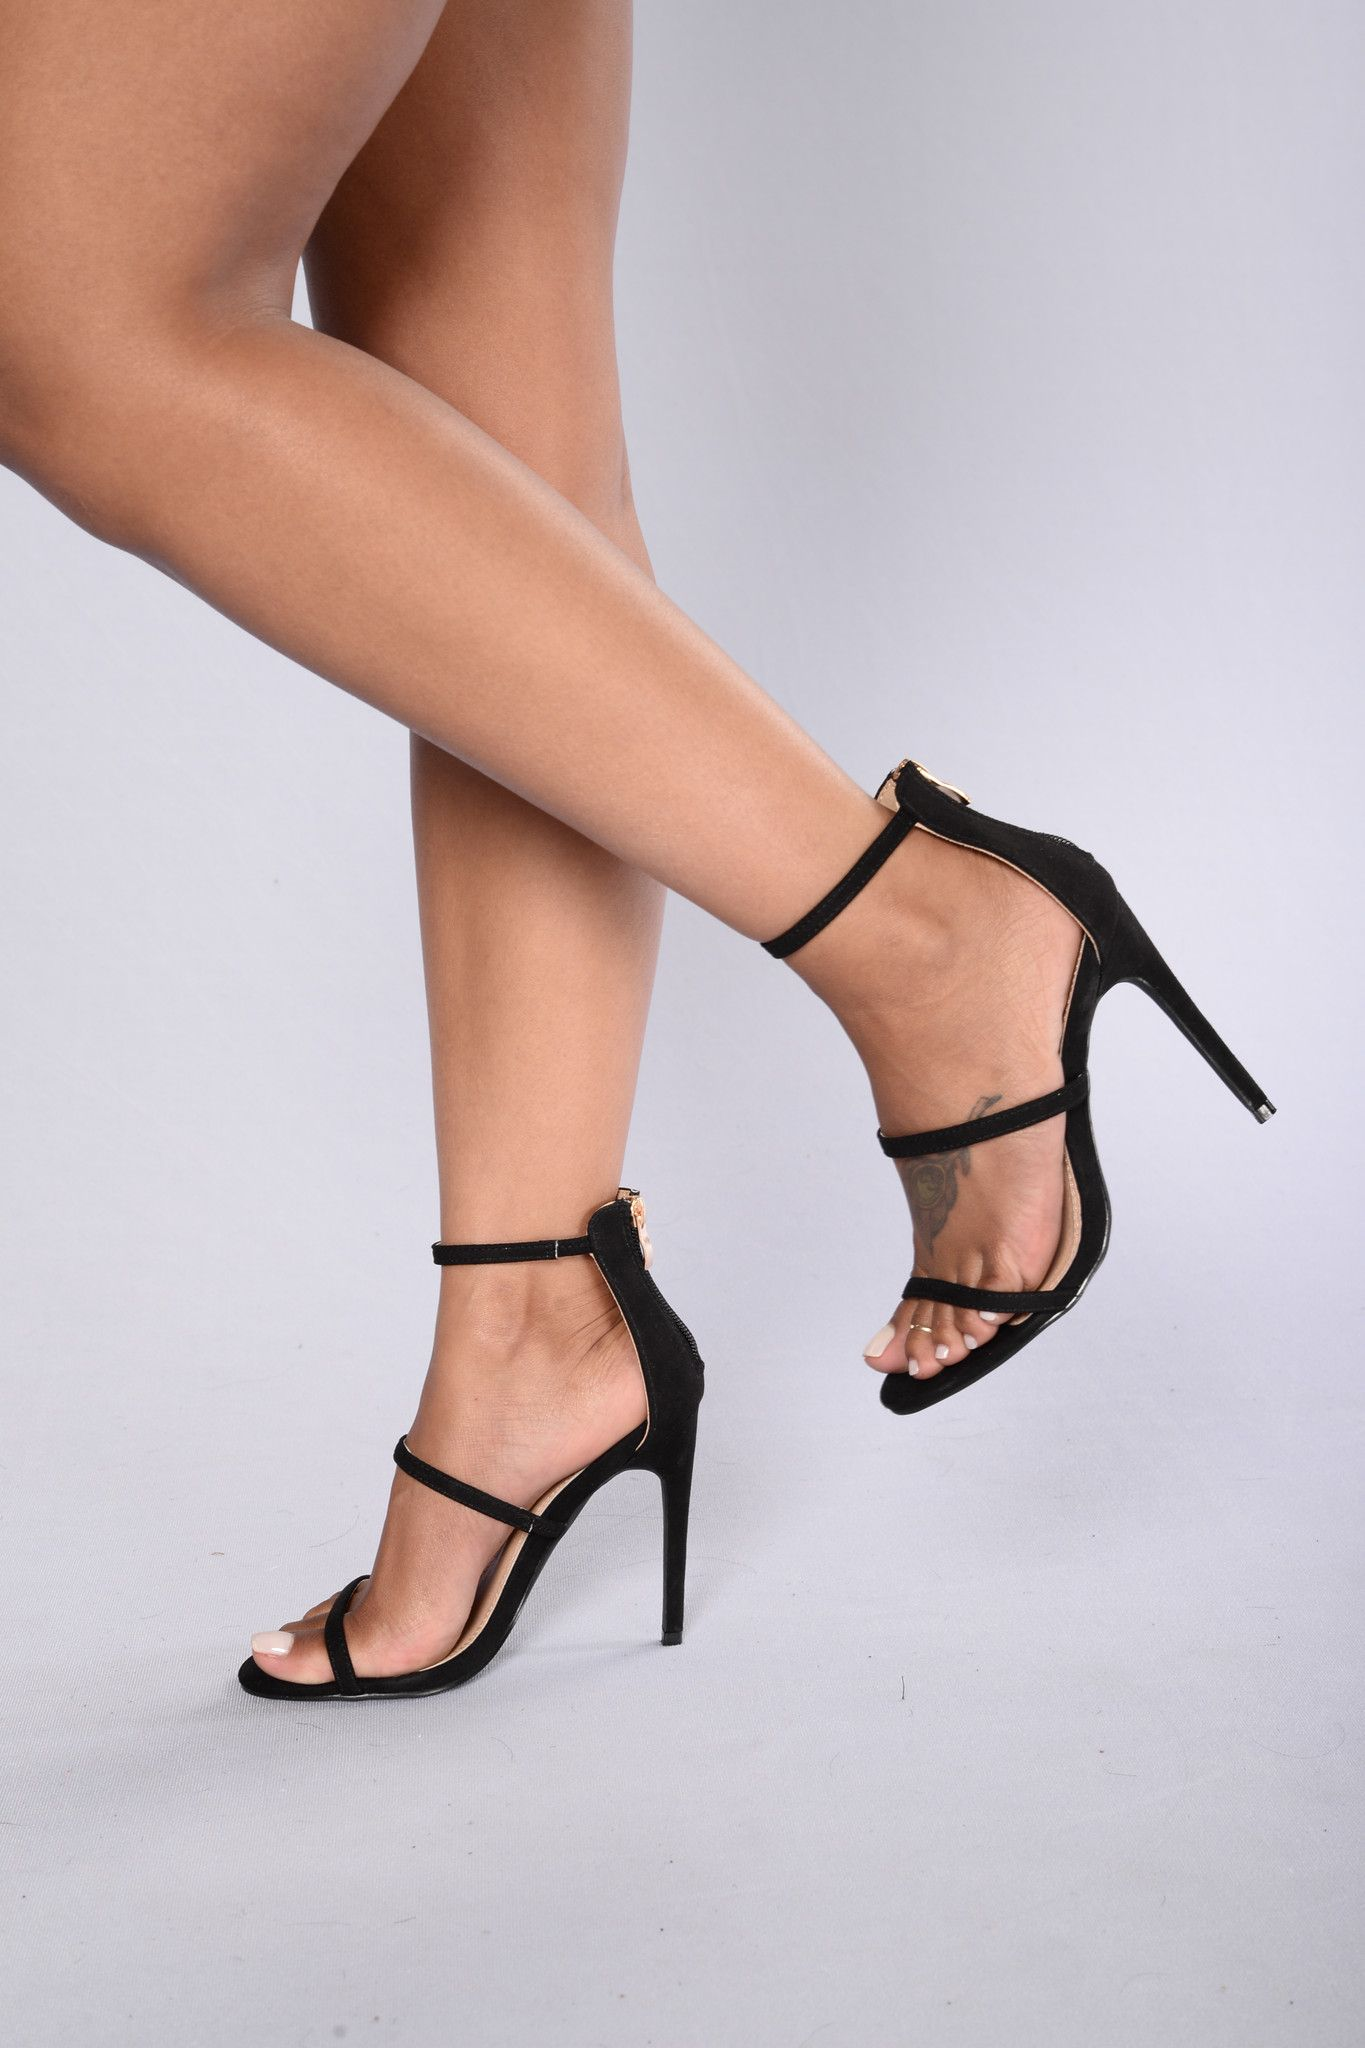 0be24296b Available in Black and Nude - Suede - Strappy - Open Open - Back Zipper -  4.25 inch heel